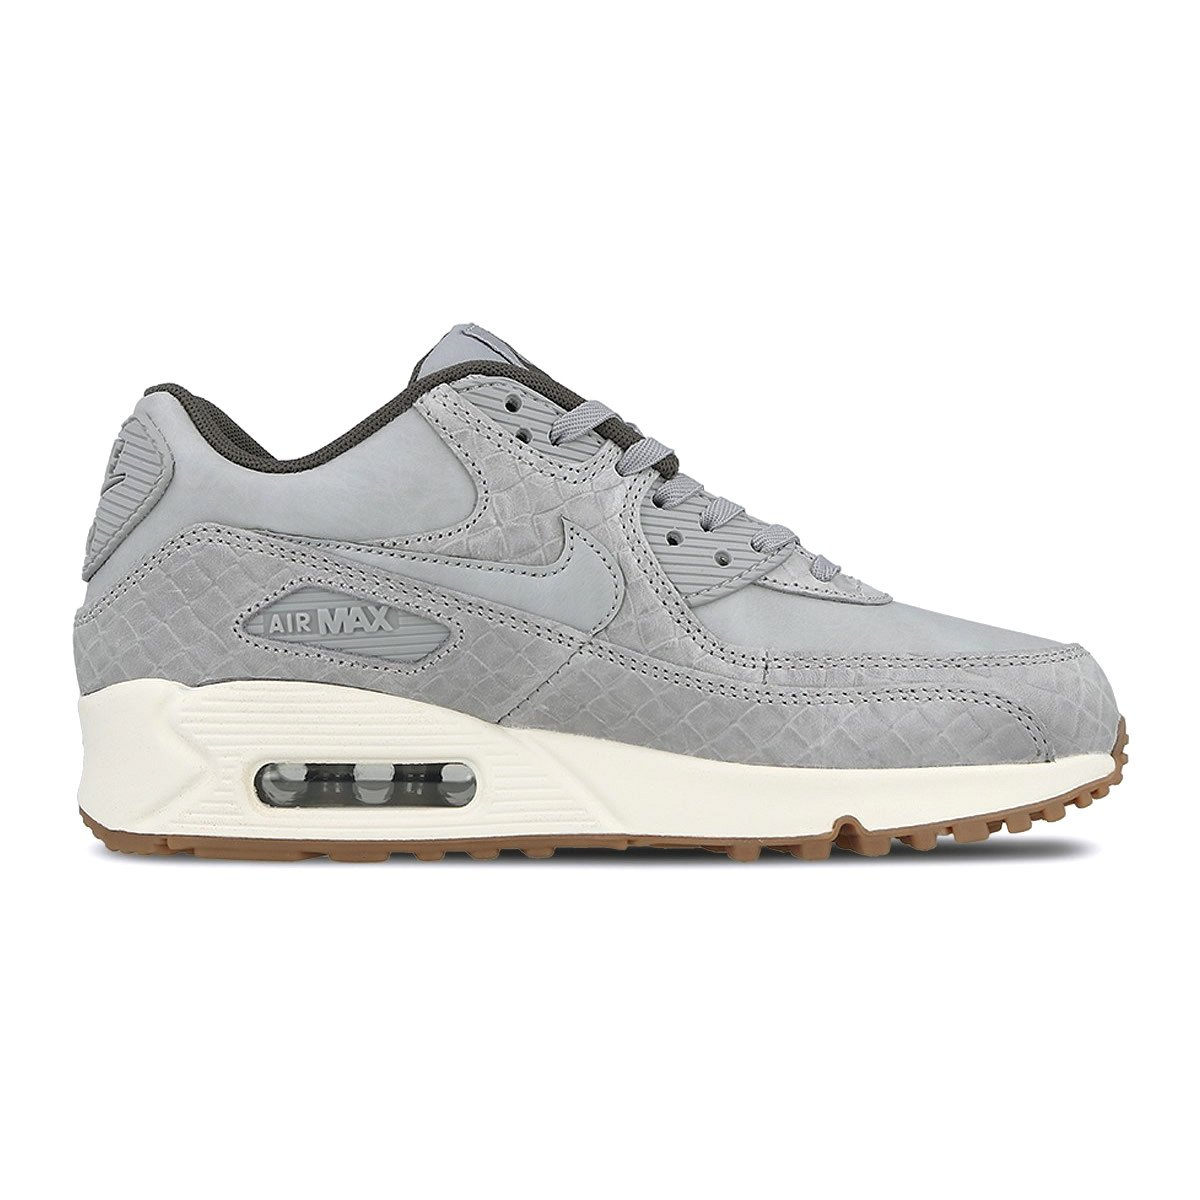 Nike Air Max 90 Premium Womens Running Tennis Shoes Wolf Grey Size 10 443817 011